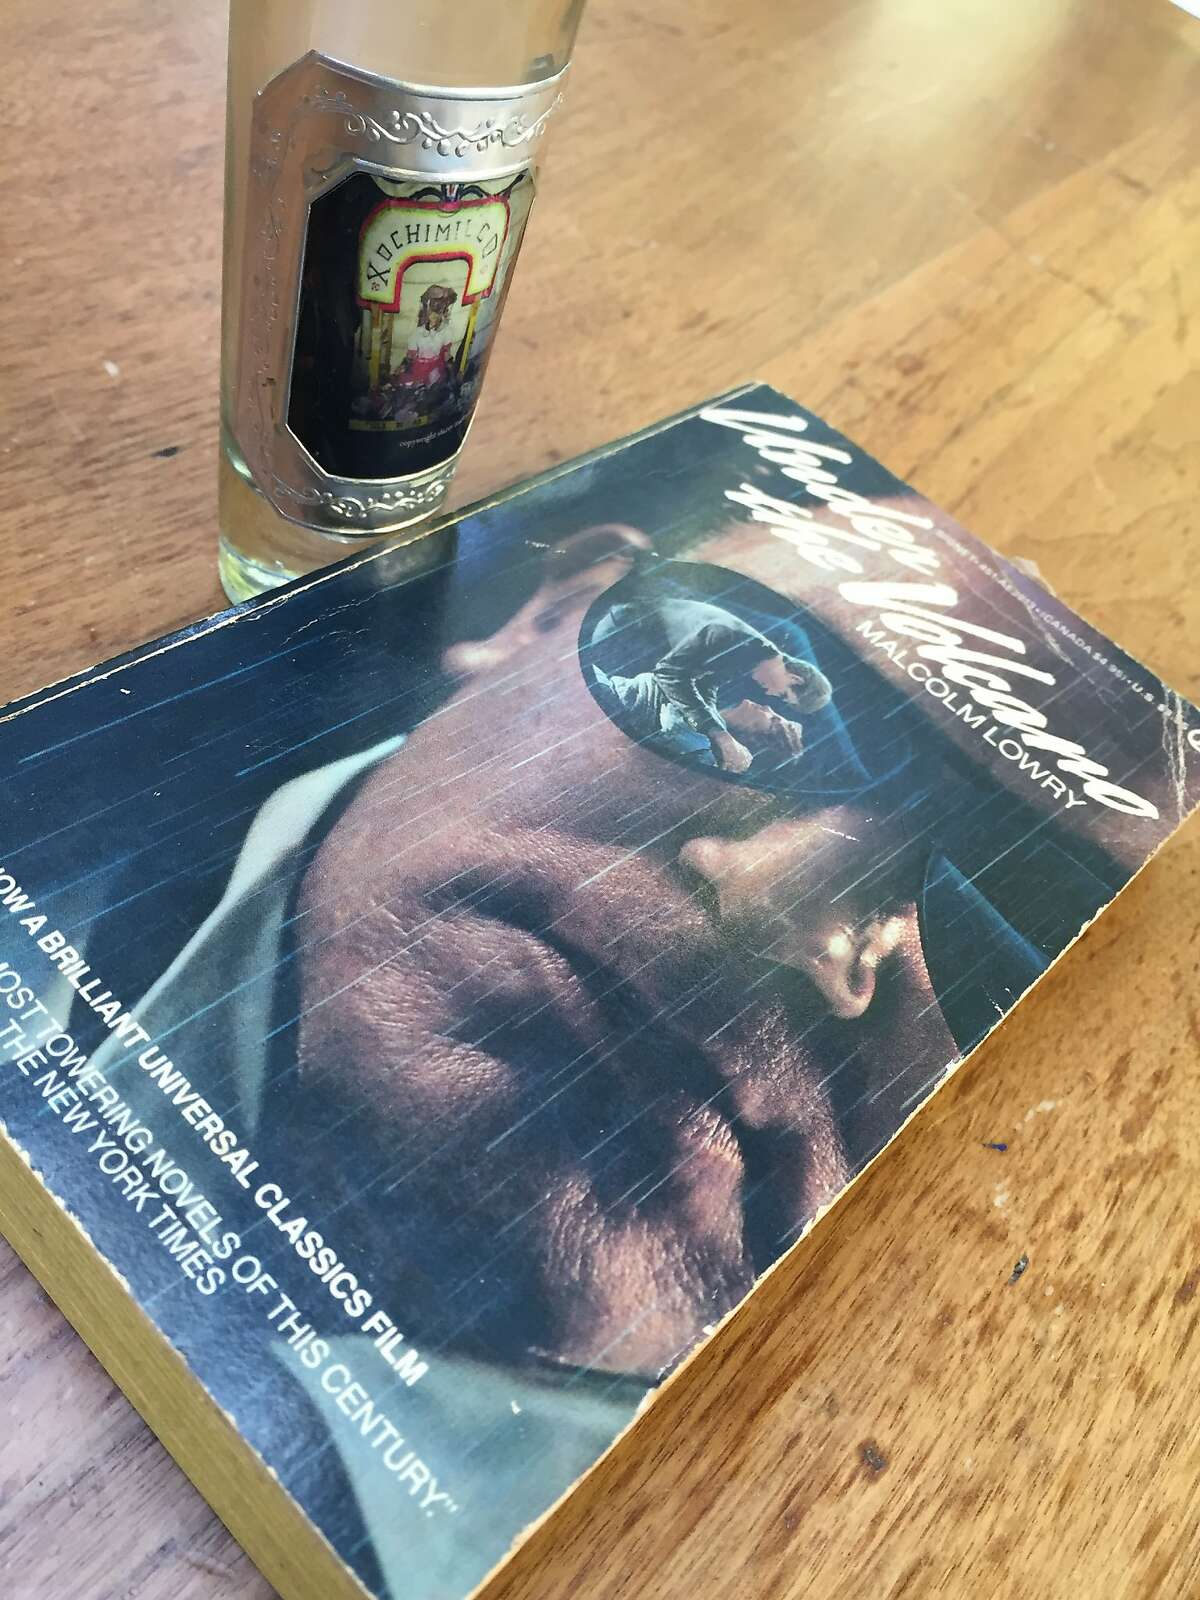 �Under the Volcano,� by Malcolm Lowry.